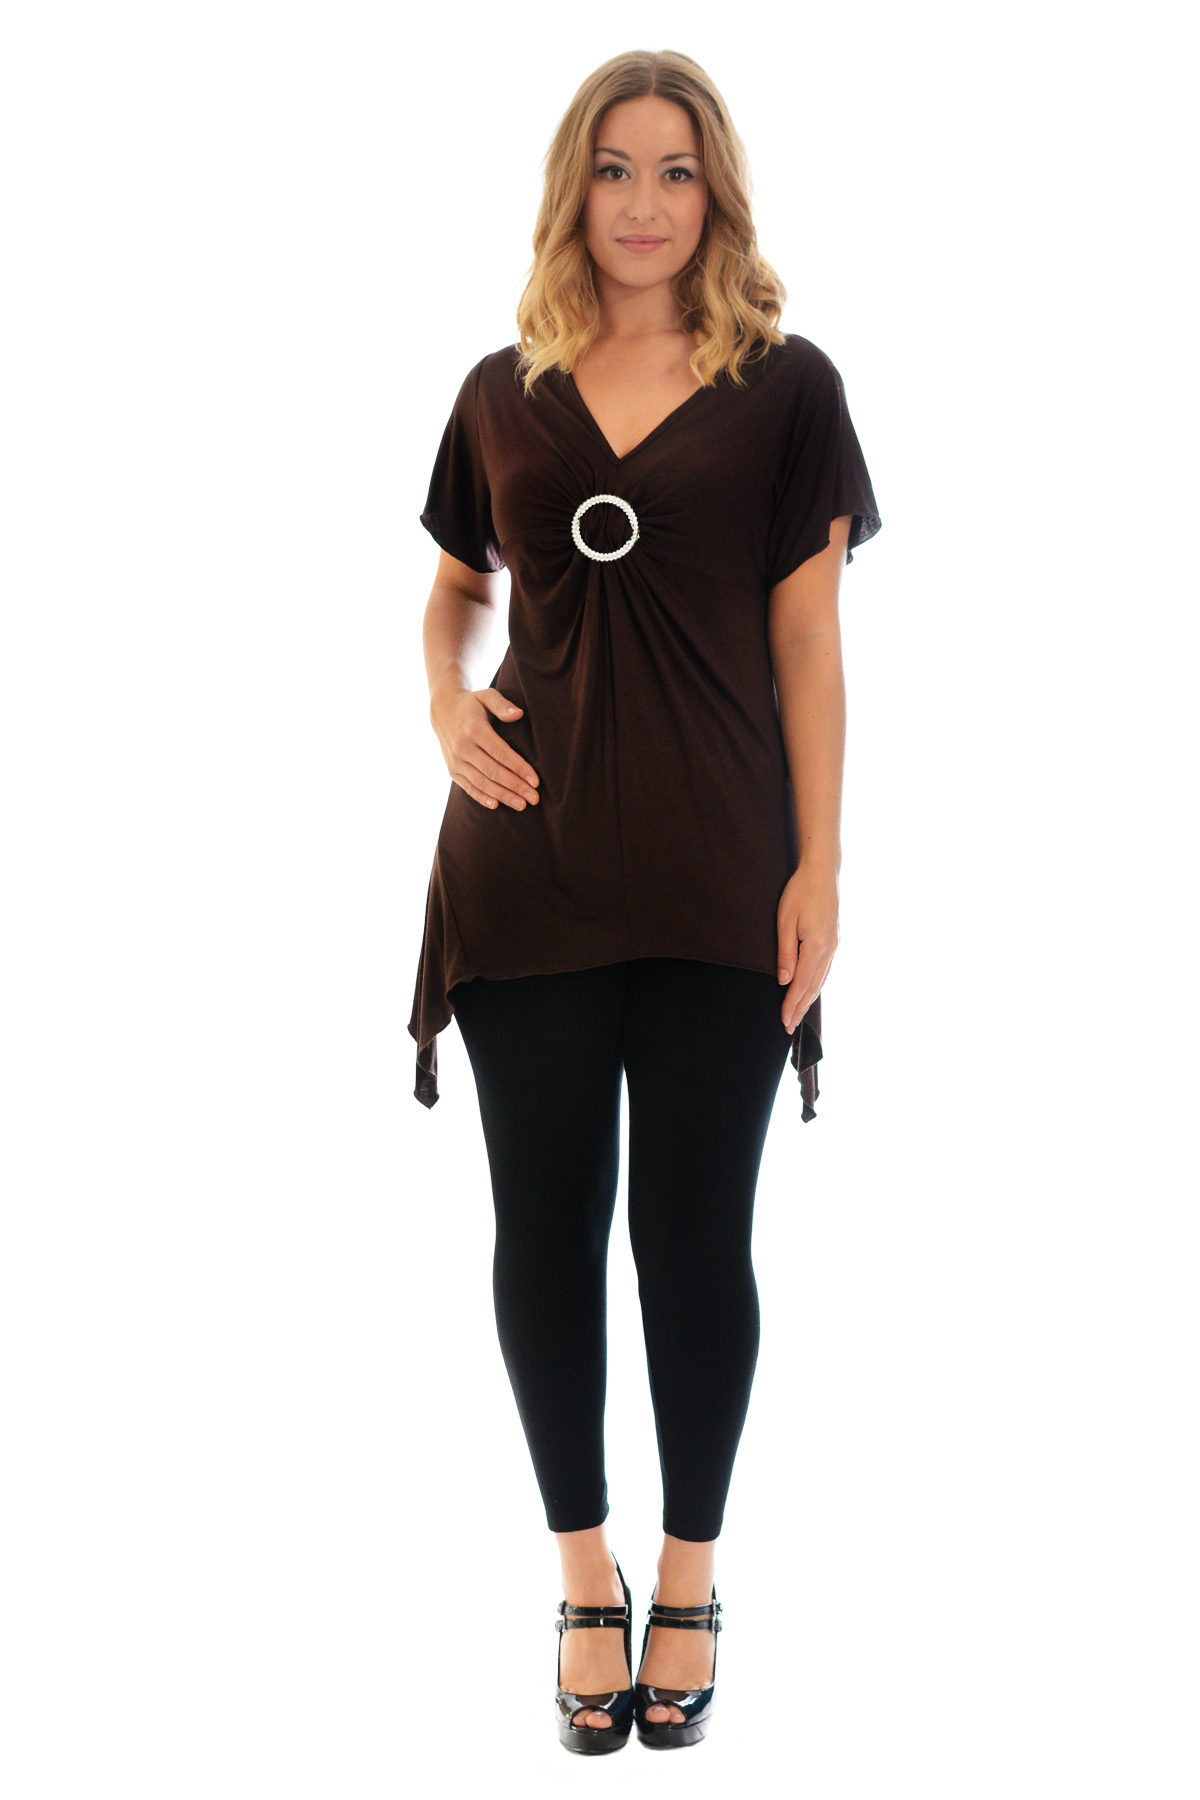 New-Womens-Plus-Size-Top-Ladies-T-Shirt-Buckle-Stud-A-Line-Asymmetric-Nouvelle thumbnail 48